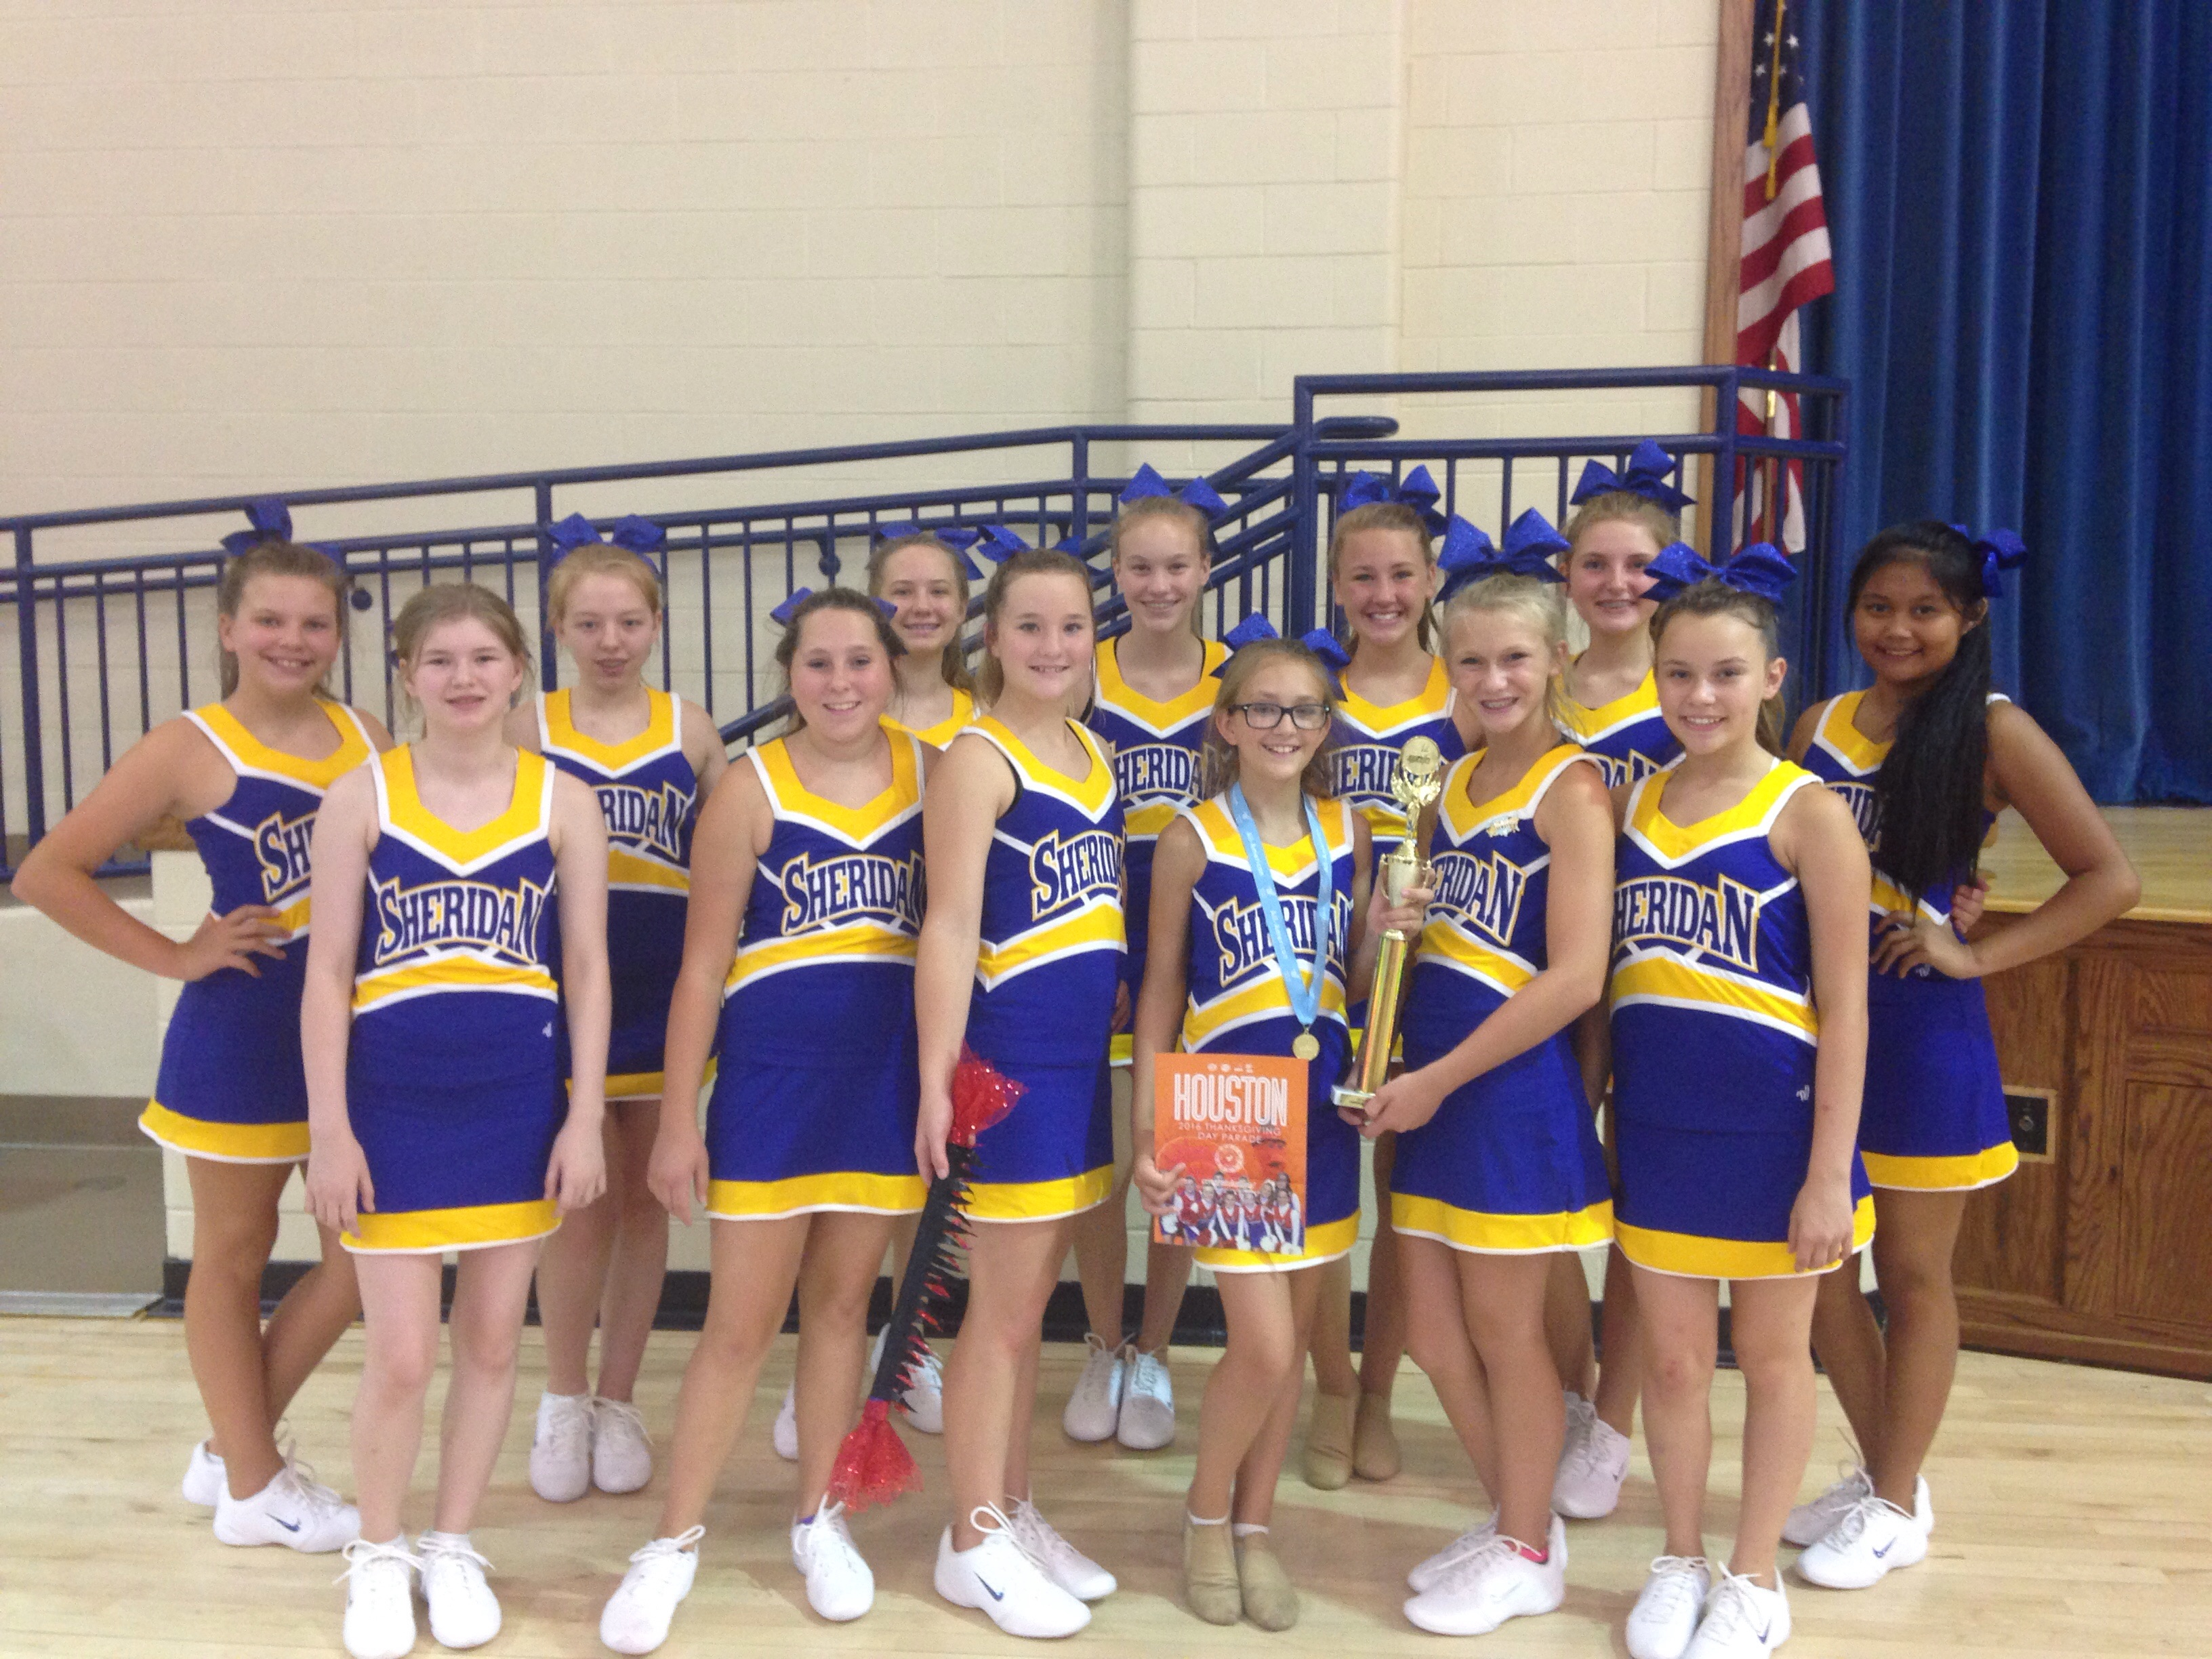 SJHS Dance Team Win Several Awards at Dance Camp